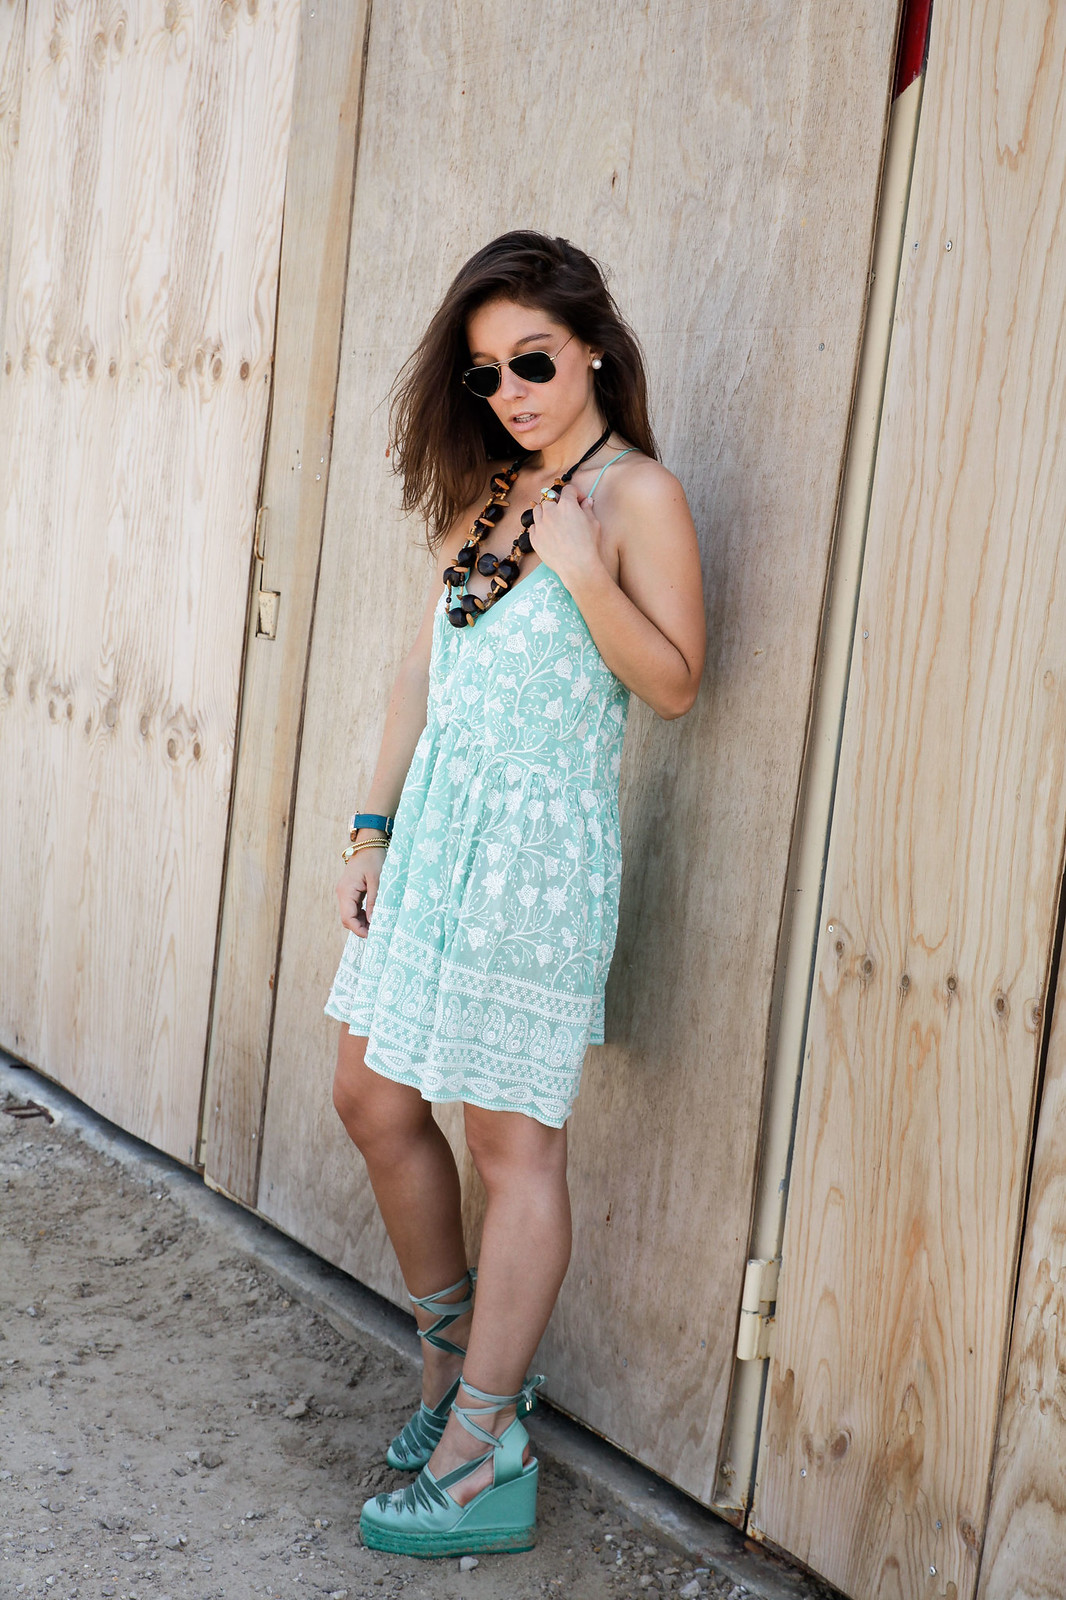 012_turquoise__dress_summer_outfit_miss_june_castañer_cuñas_aguamarina_theguestgirl_influencer_barcelona_laura_santolaria